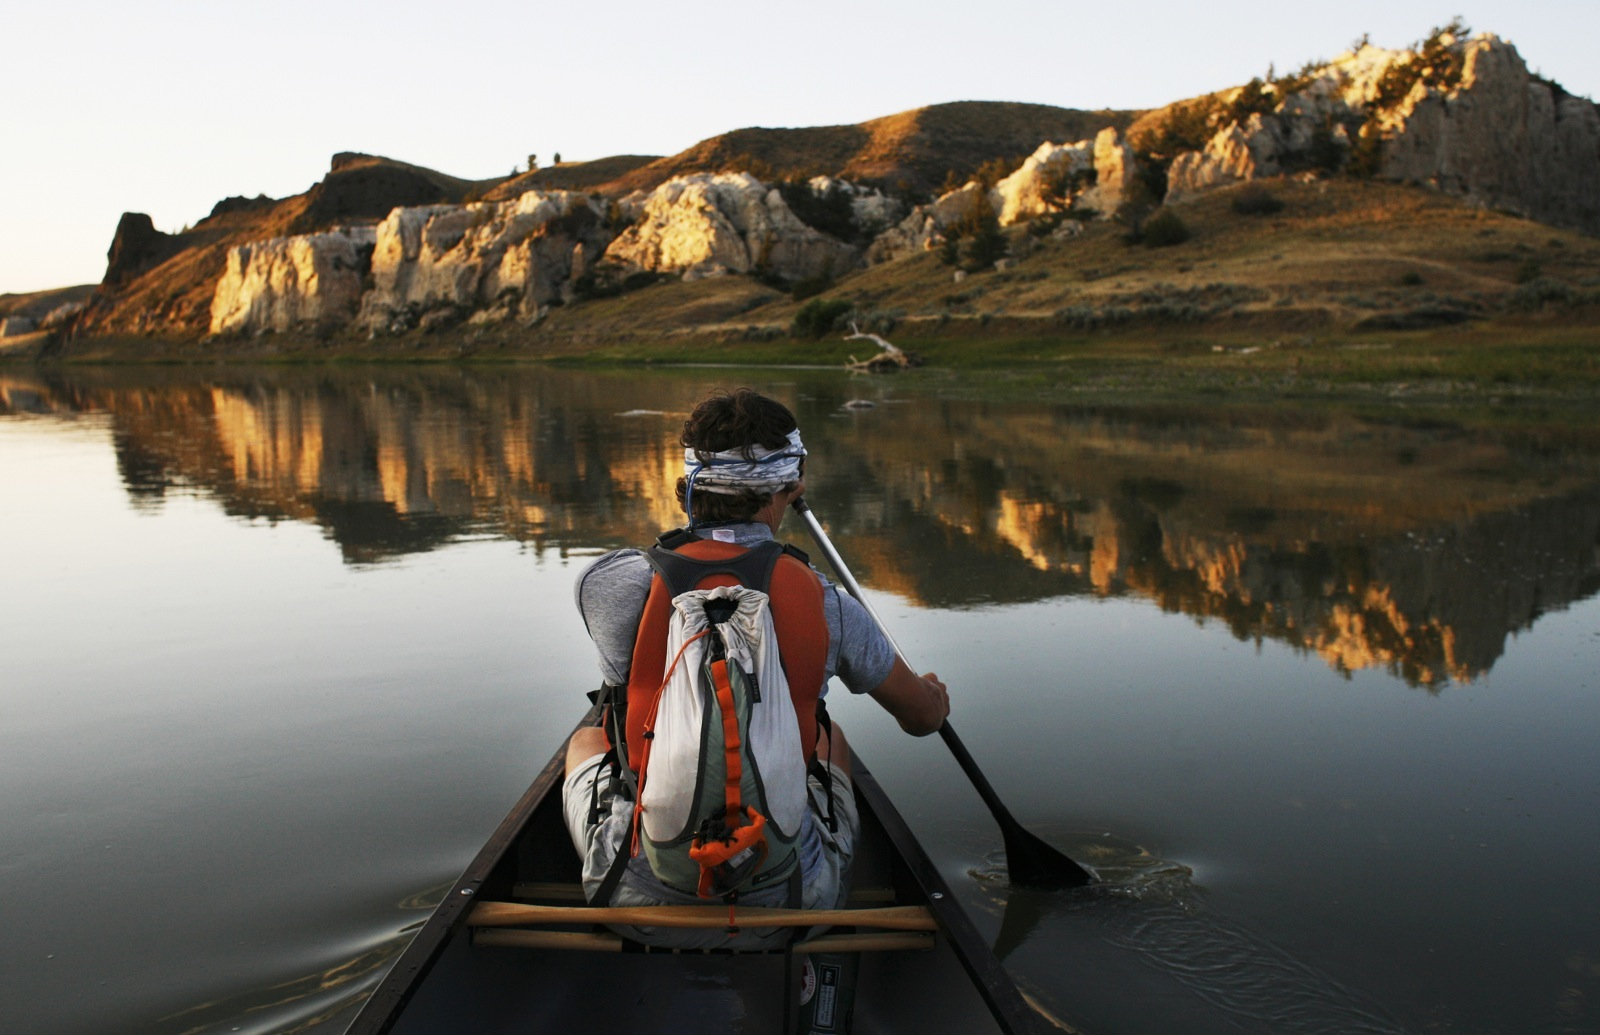 The bow paddler in a tandem canoe aims towards the White Cliffs of the Missouri River, which are reflected in the river's glassy water.